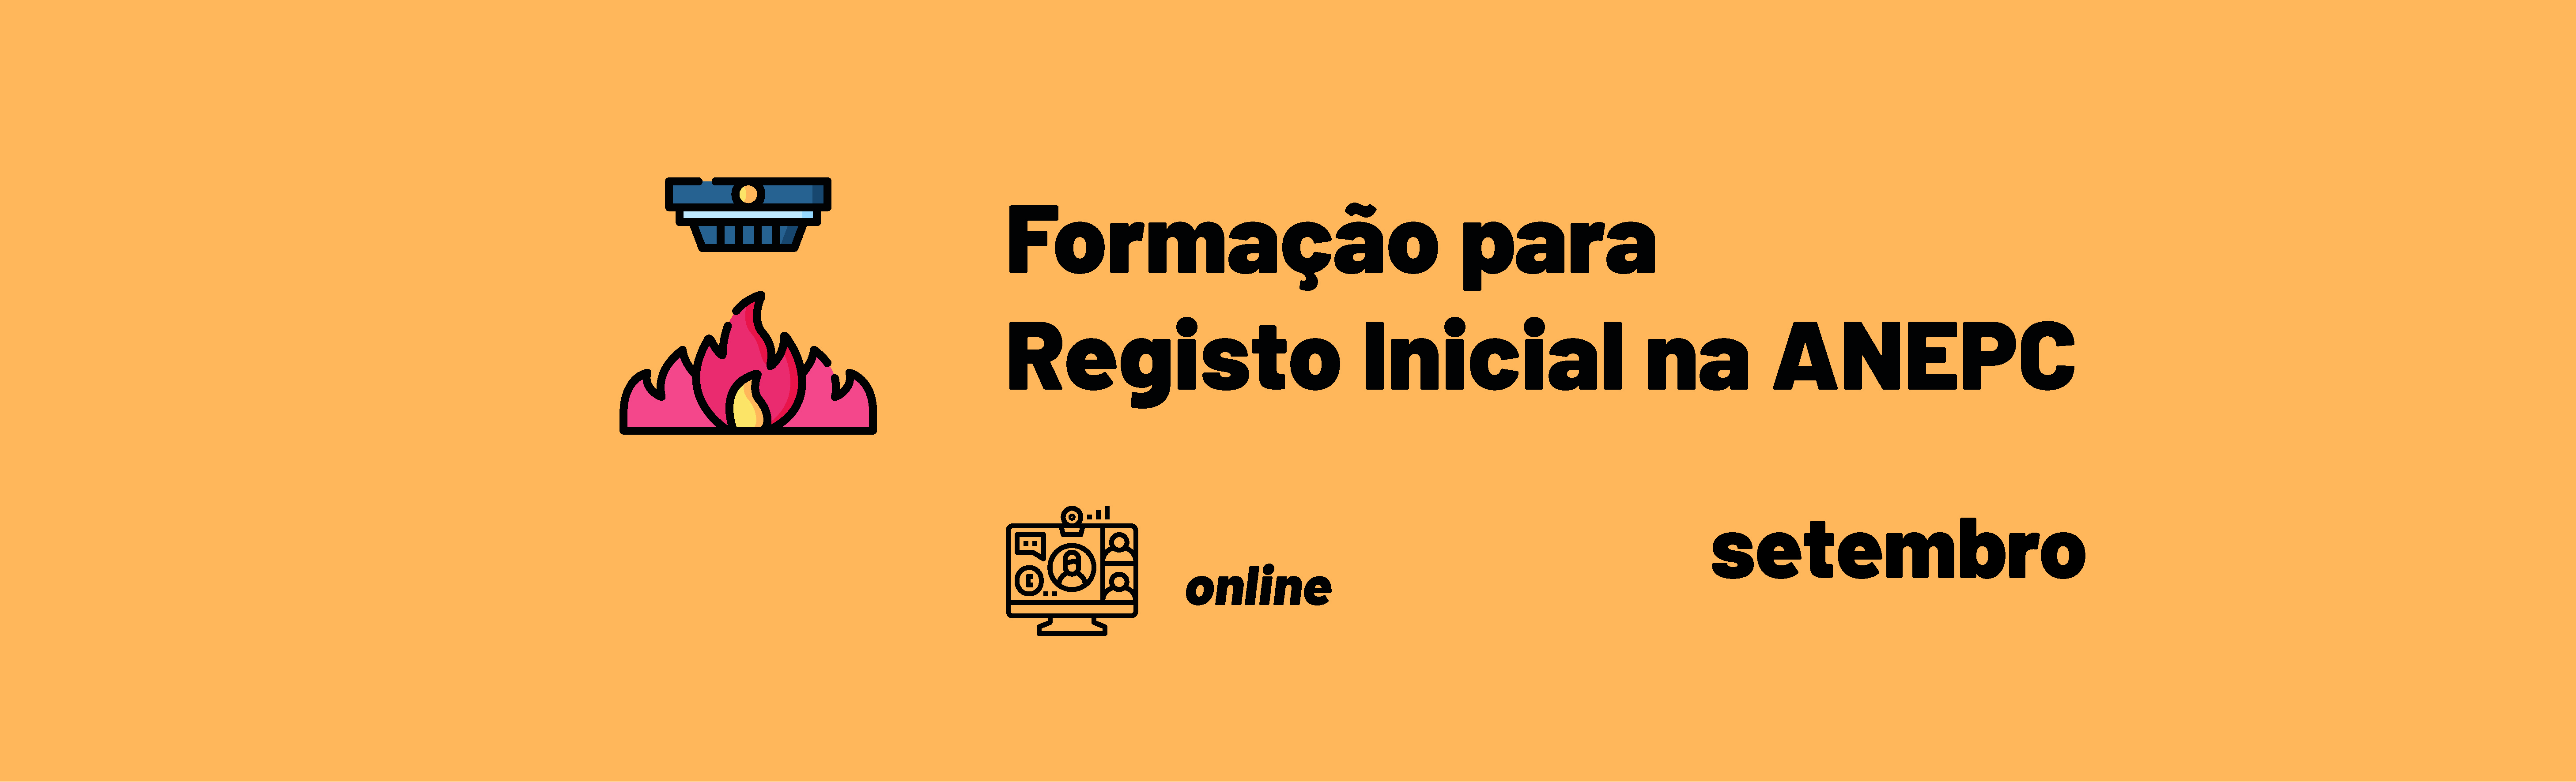 FormacaoANEPC_Inicial-2